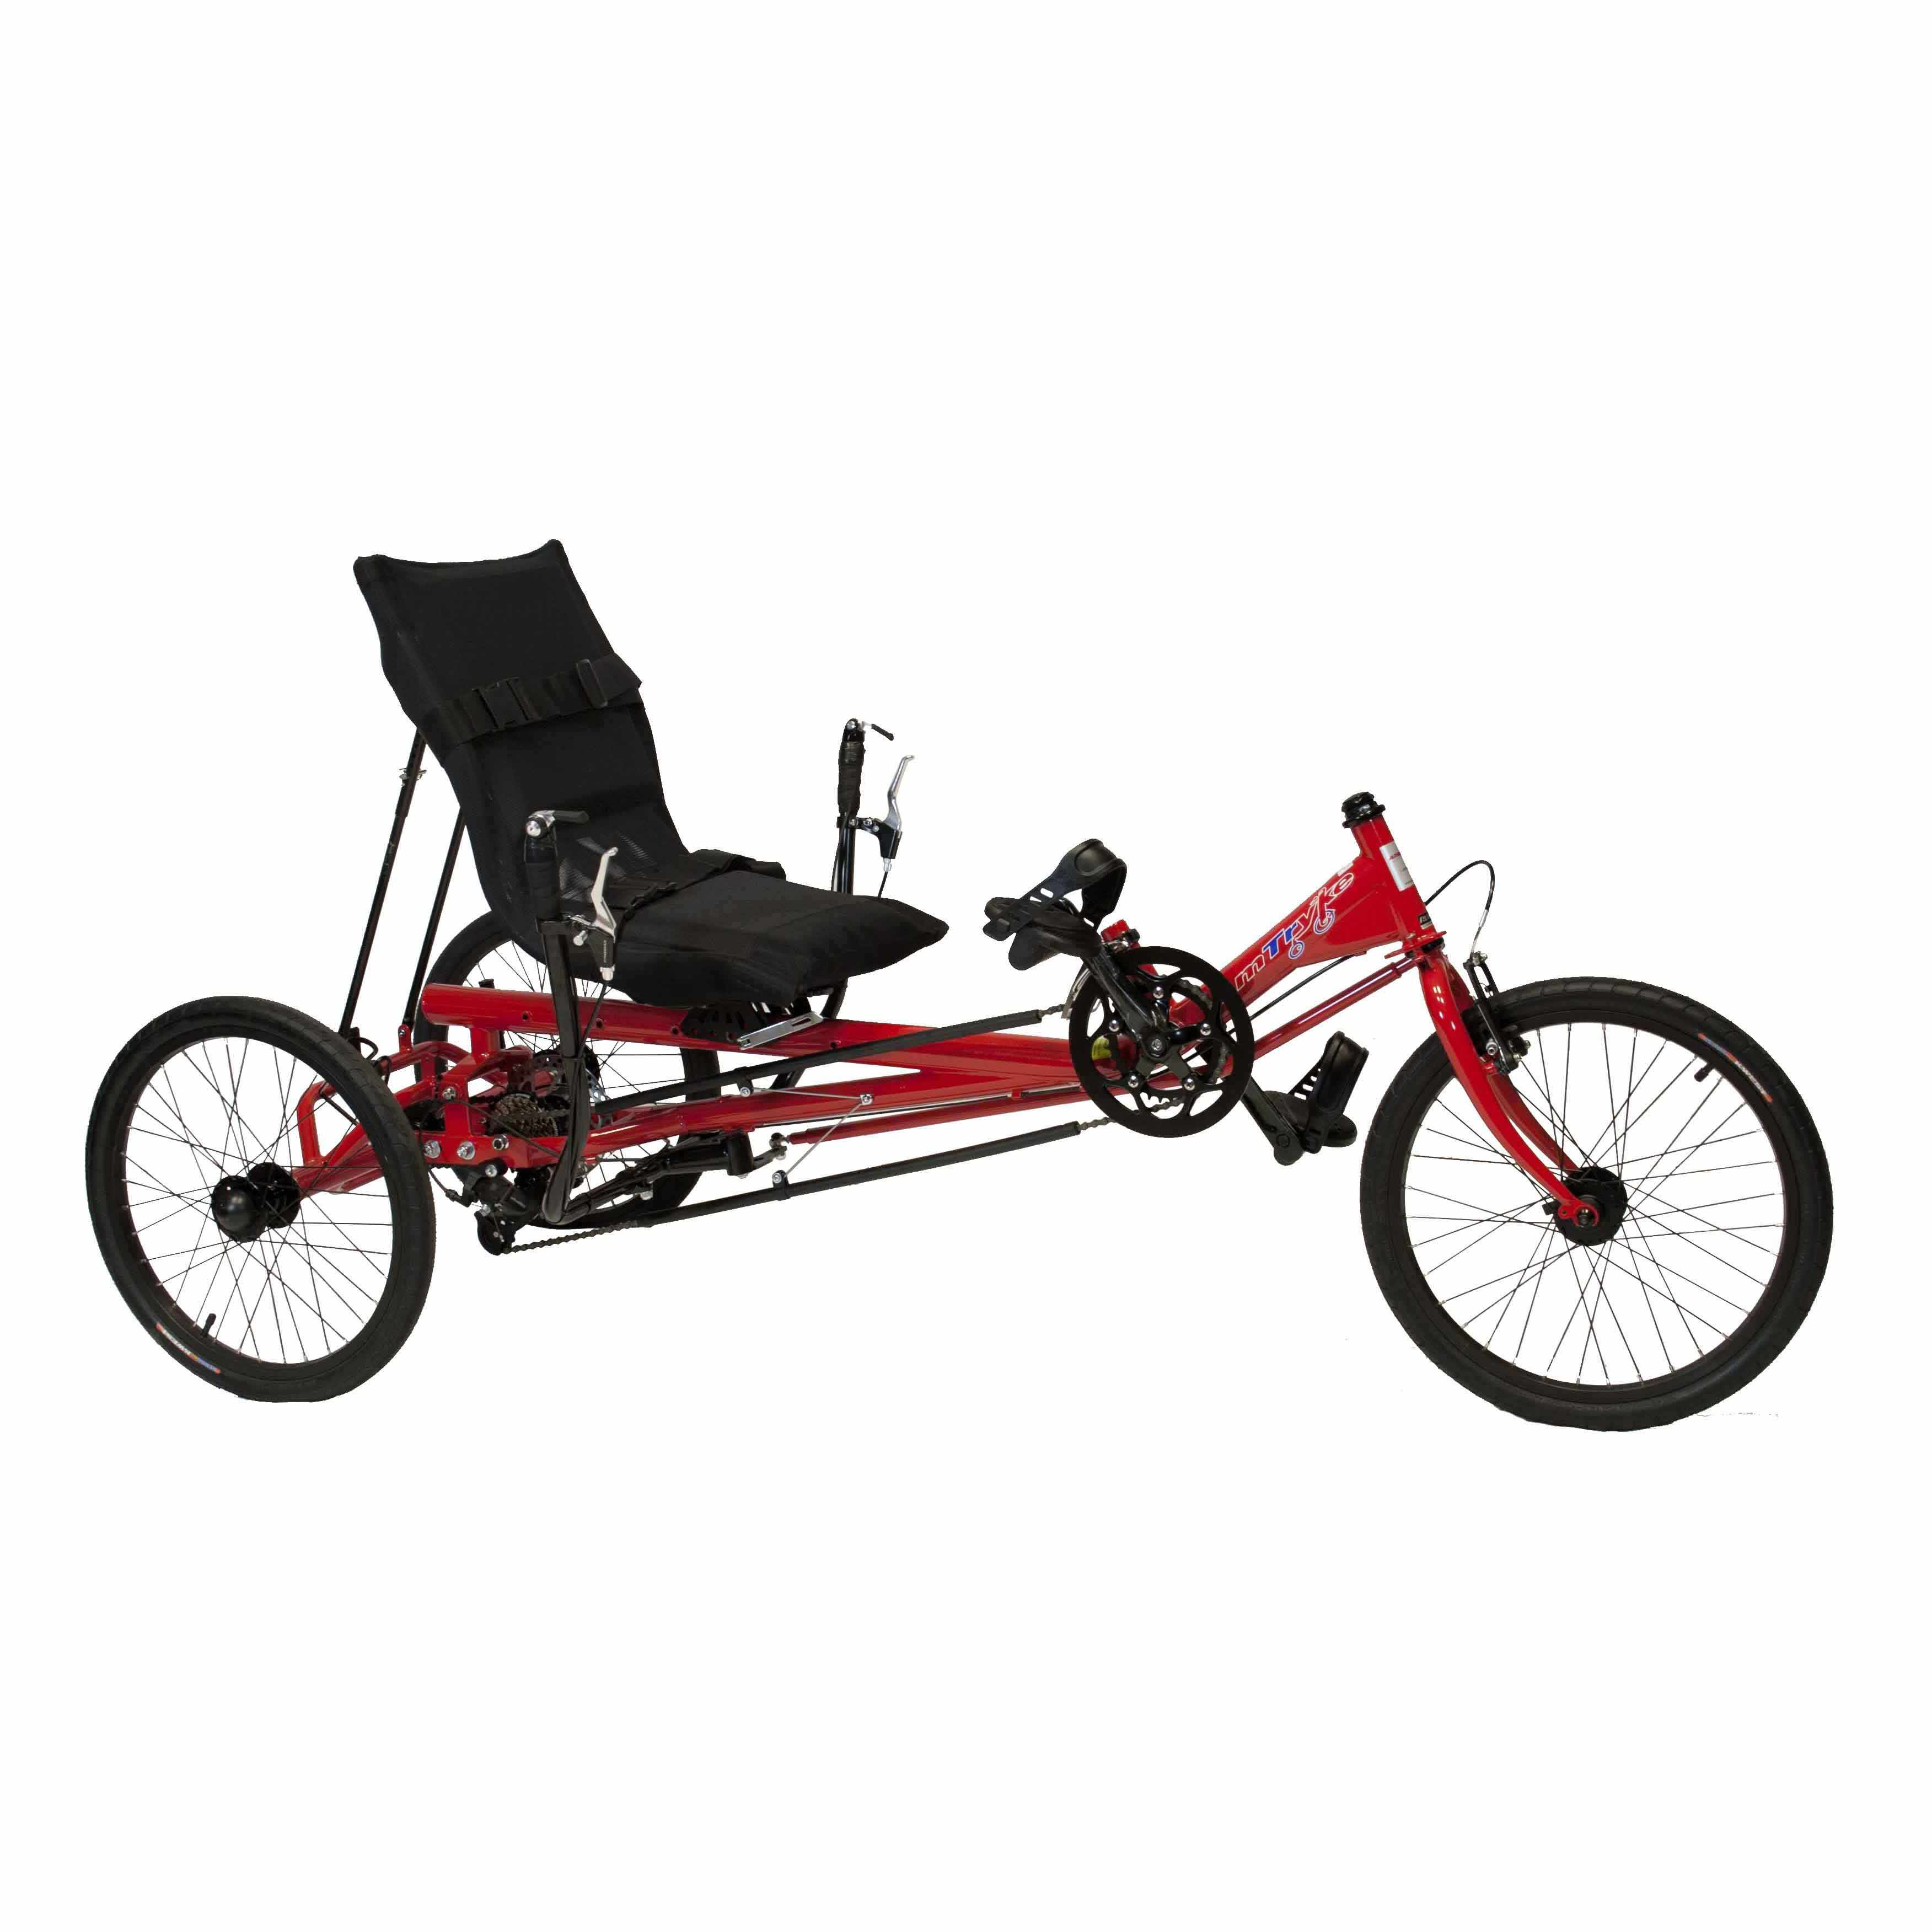 Amtryke Jt-2300 Uss Tricycle With Recumbent Seat | Amtryke Tricycles